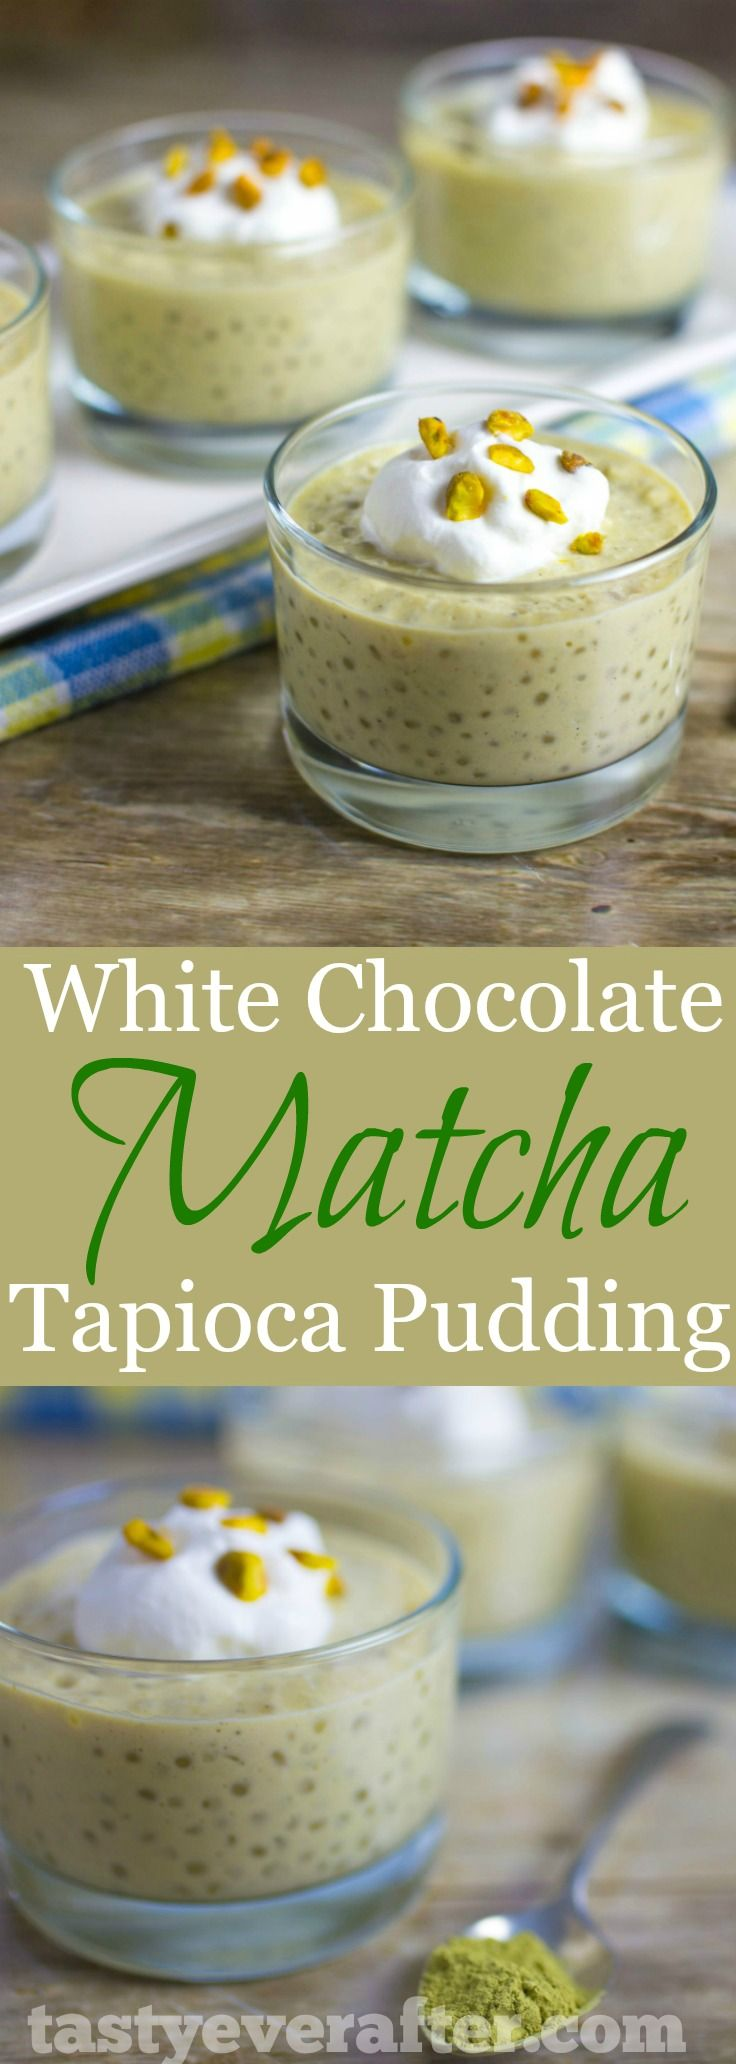 This tapioca pudding is my family's new favorite dessert!  The white chocolate is perfect with the green tea flavor.  Can leave out the matcha too and it's still so delicious! #tastyeverafter